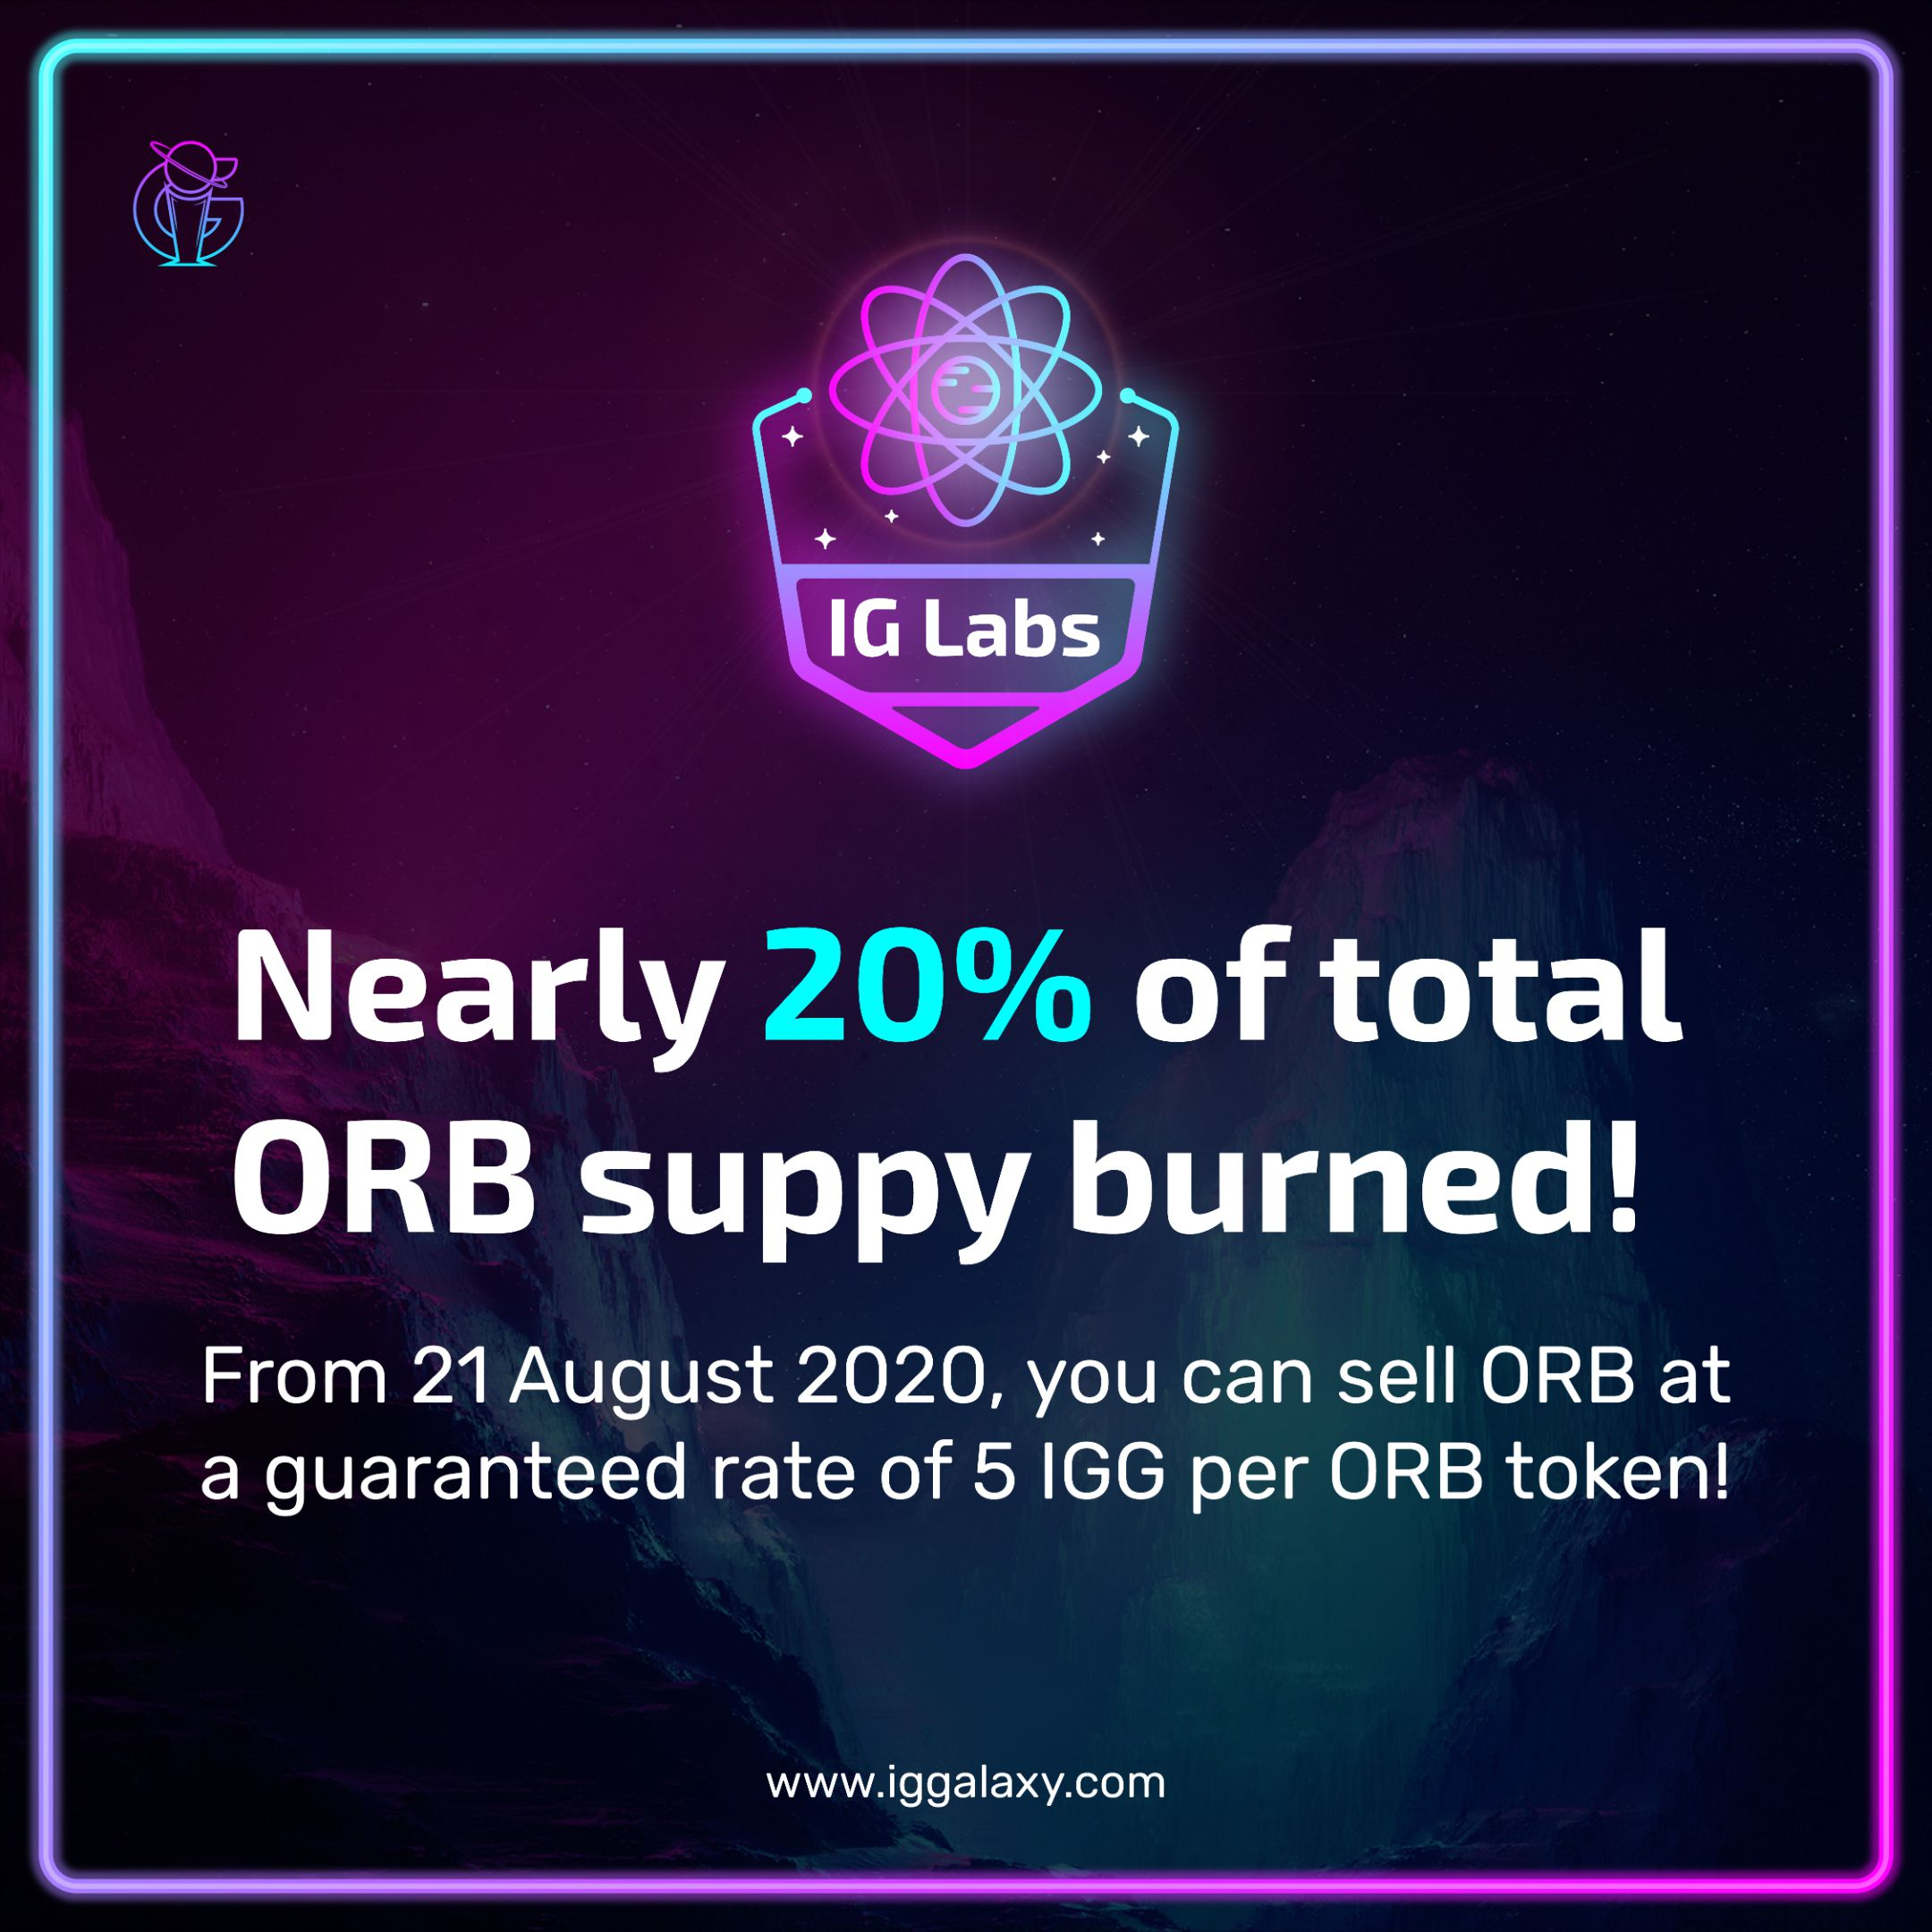 IGLabs Update: We'll pay 5 IGG per ORB from Friday 21 August 2020!